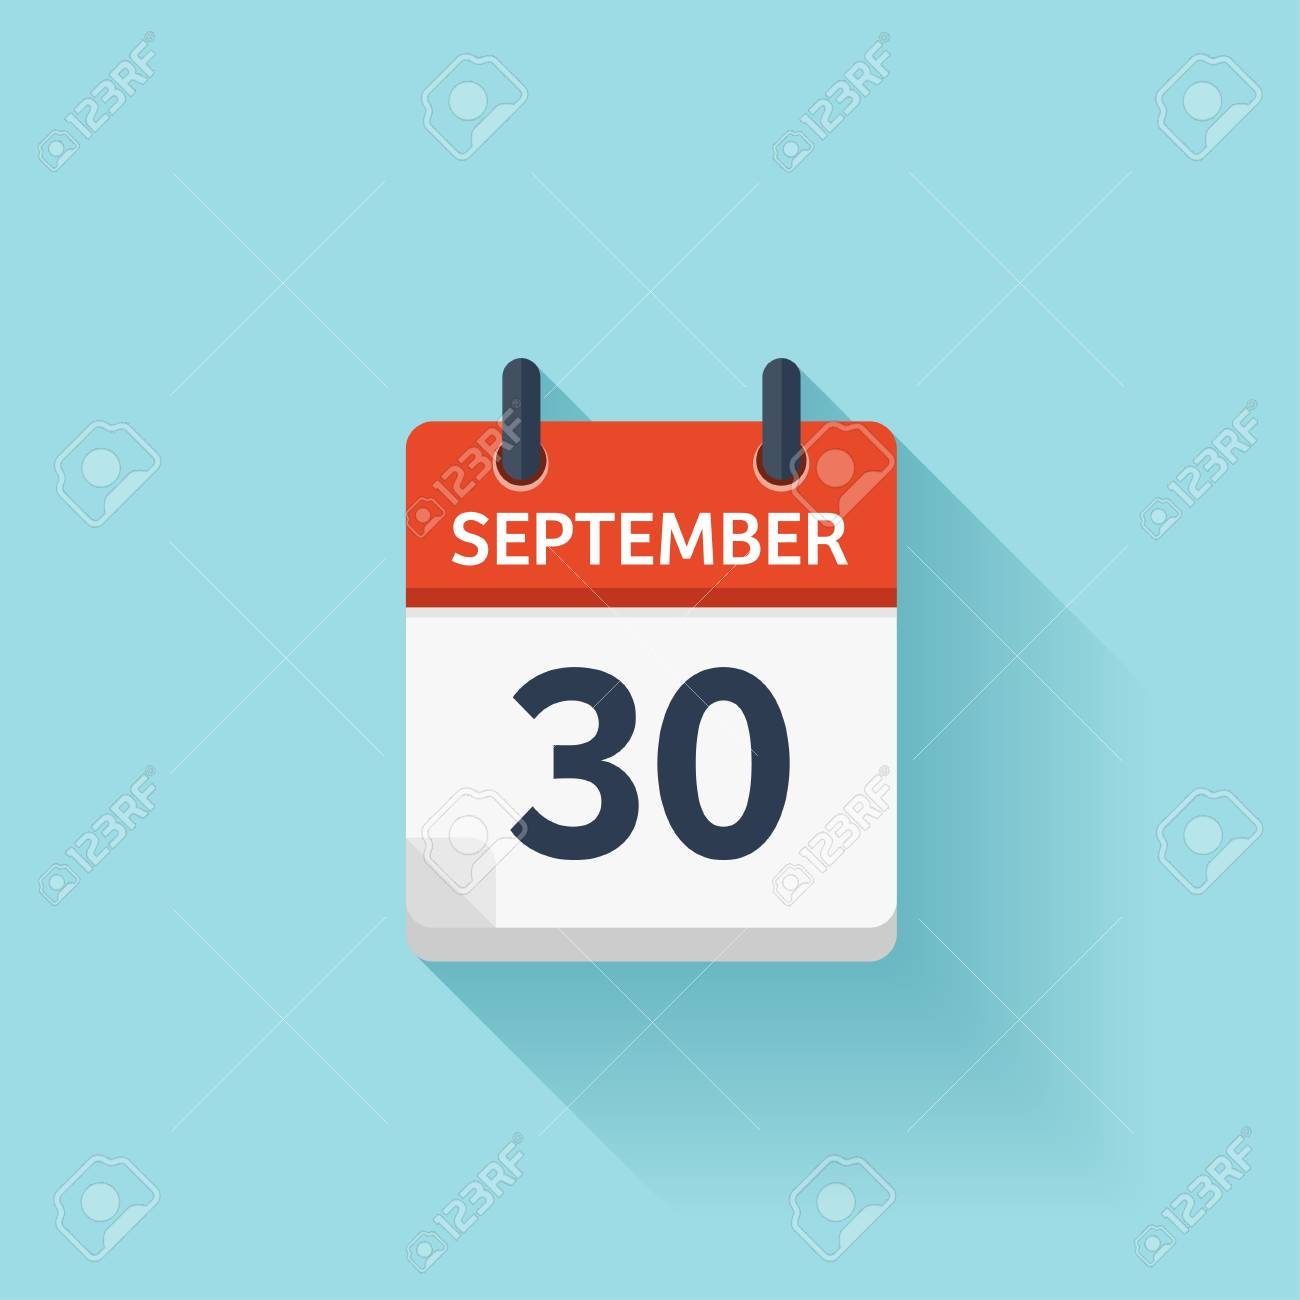 september 30 holiday